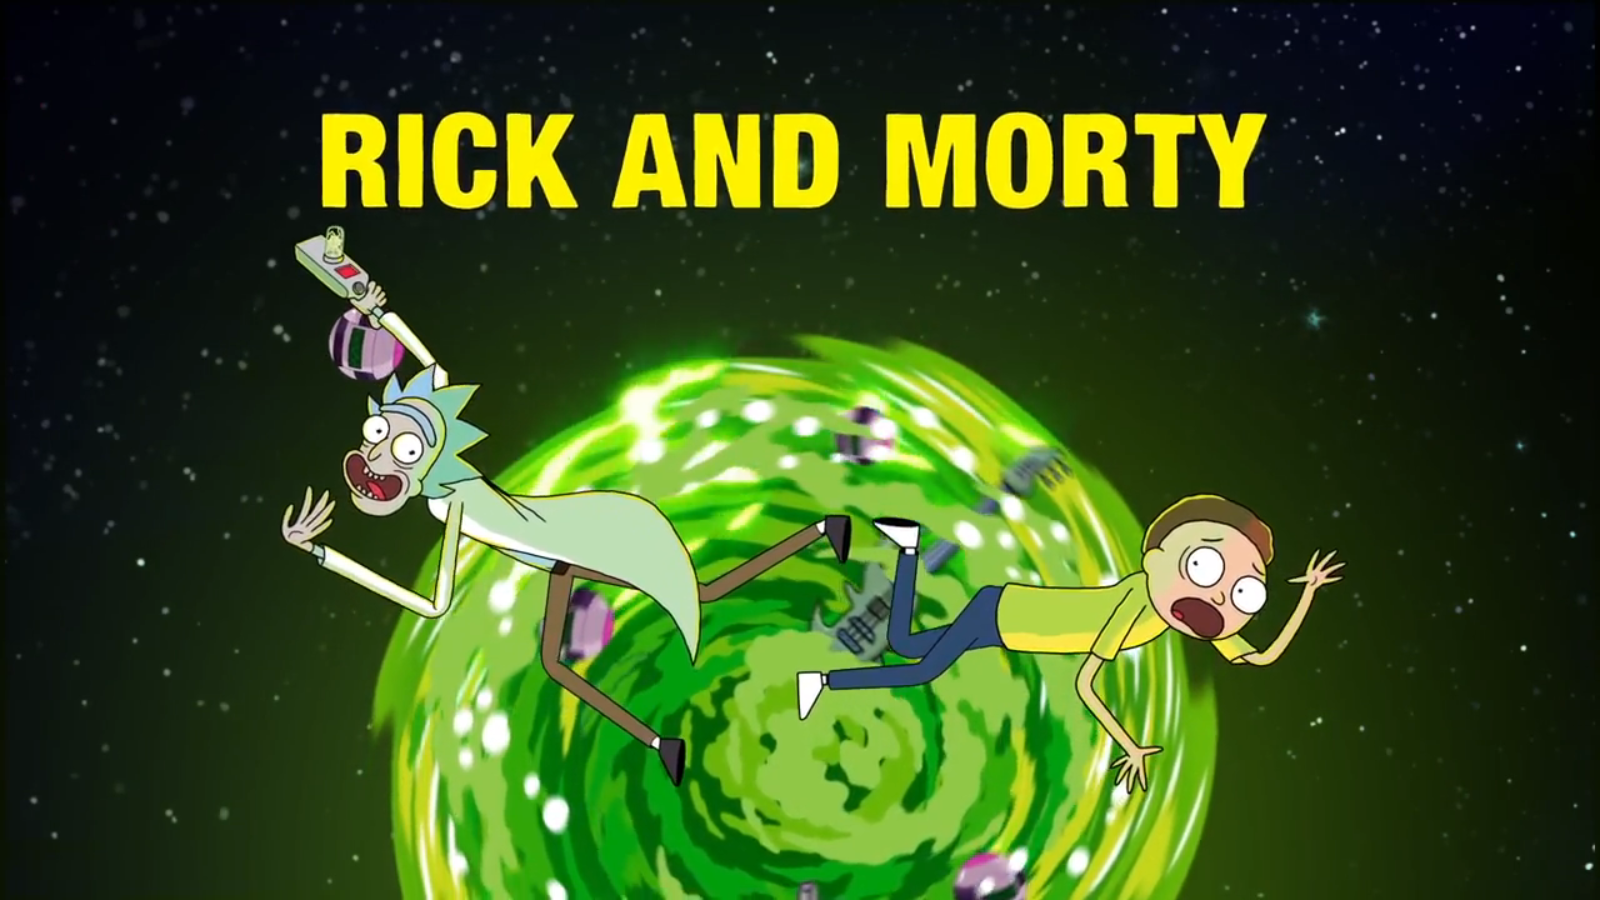 Simple Wallpaper High Quality Rick And Morty - thumb-1920-607099  Photograph_874100.png